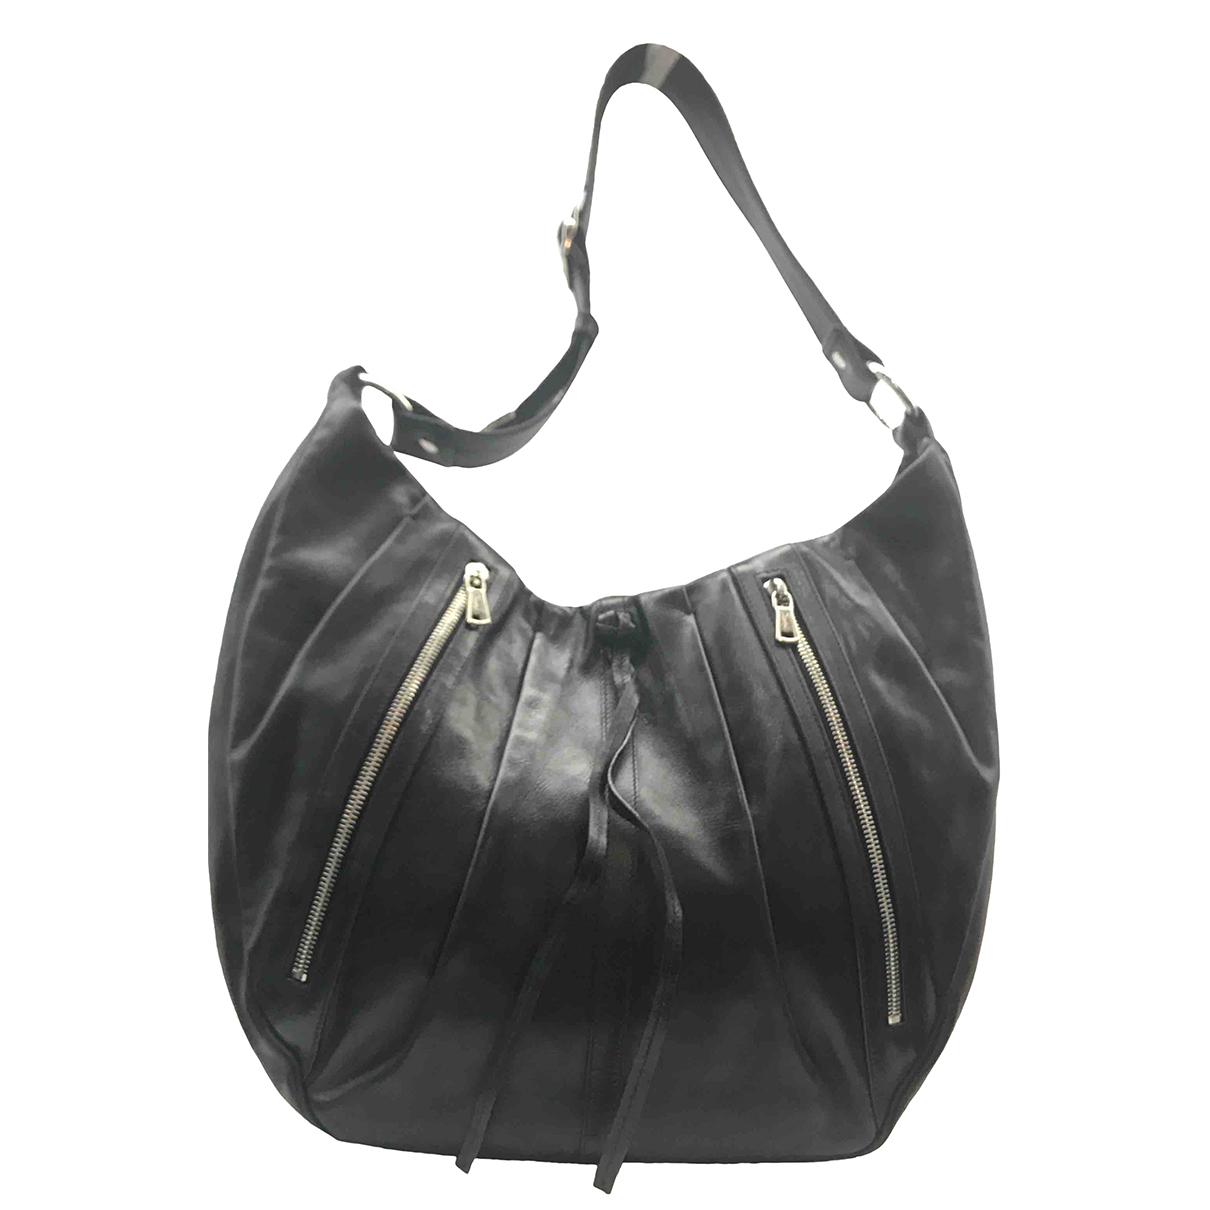 Yves Saint Laurent N Black Leather handbag for Women N